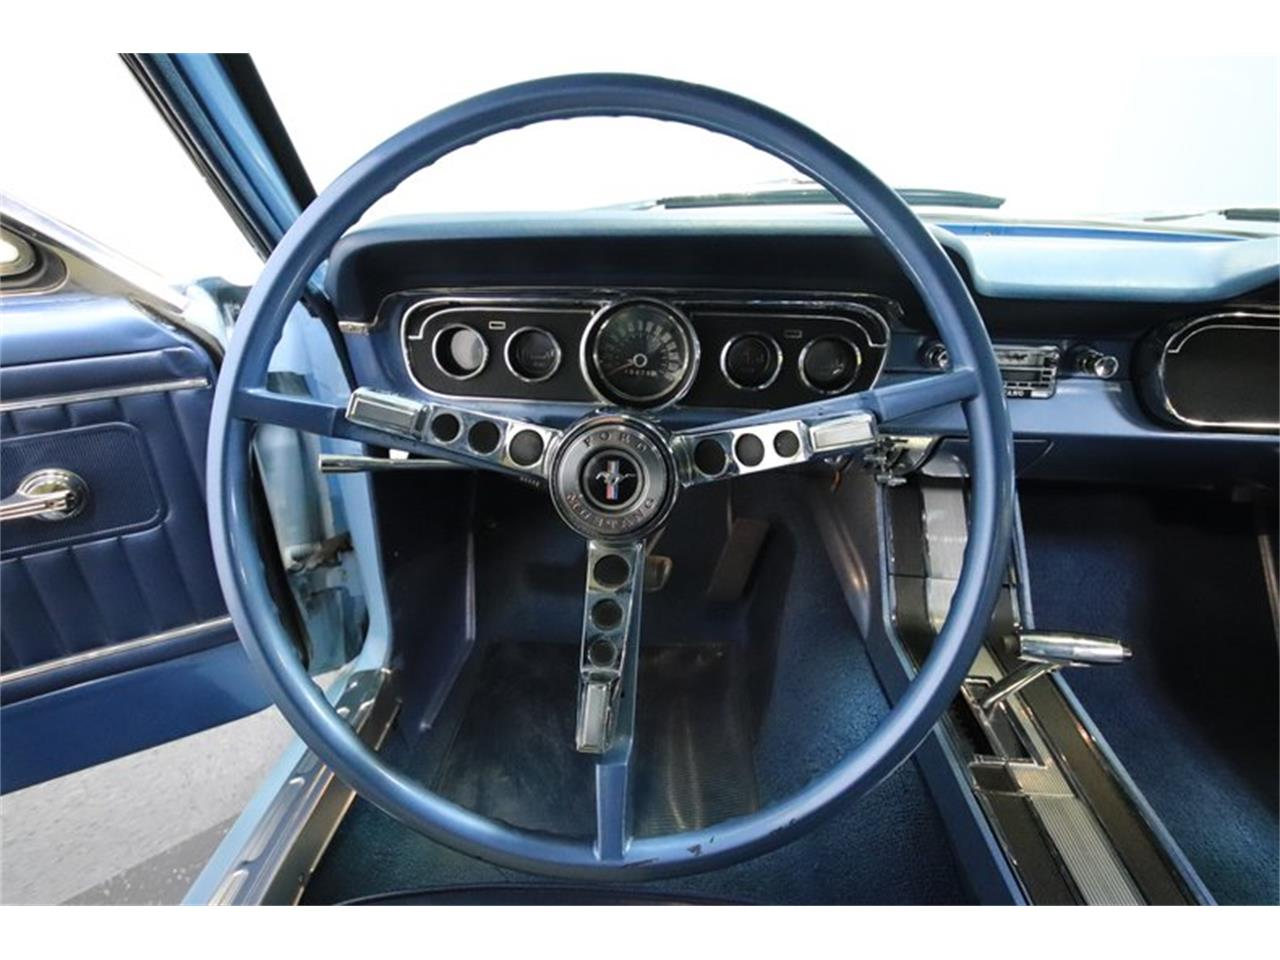 Large Picture of '65 Ford Mustang GT located in Arizona - $24,995.00 Offered by Streetside Classics - Phoenix - MI7M